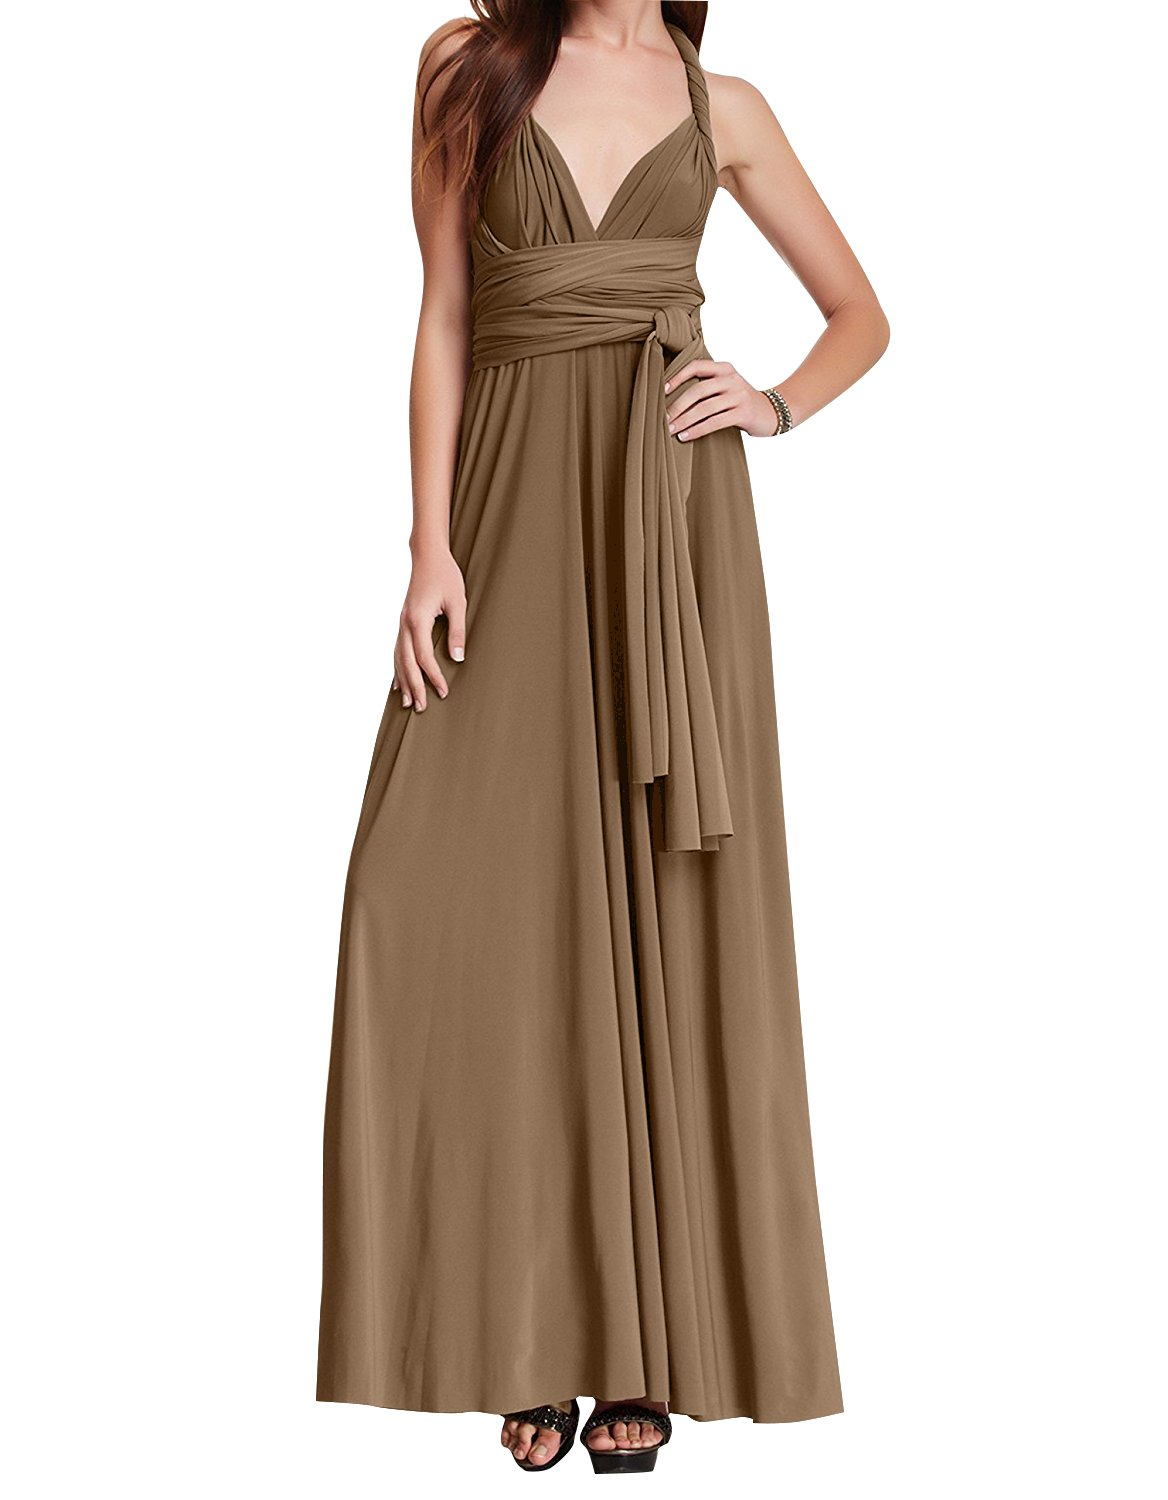 IBTOM CASTLE Womens Transformer/Wrap Infinity Dresses Maxi Cocktail Gown Long Dress